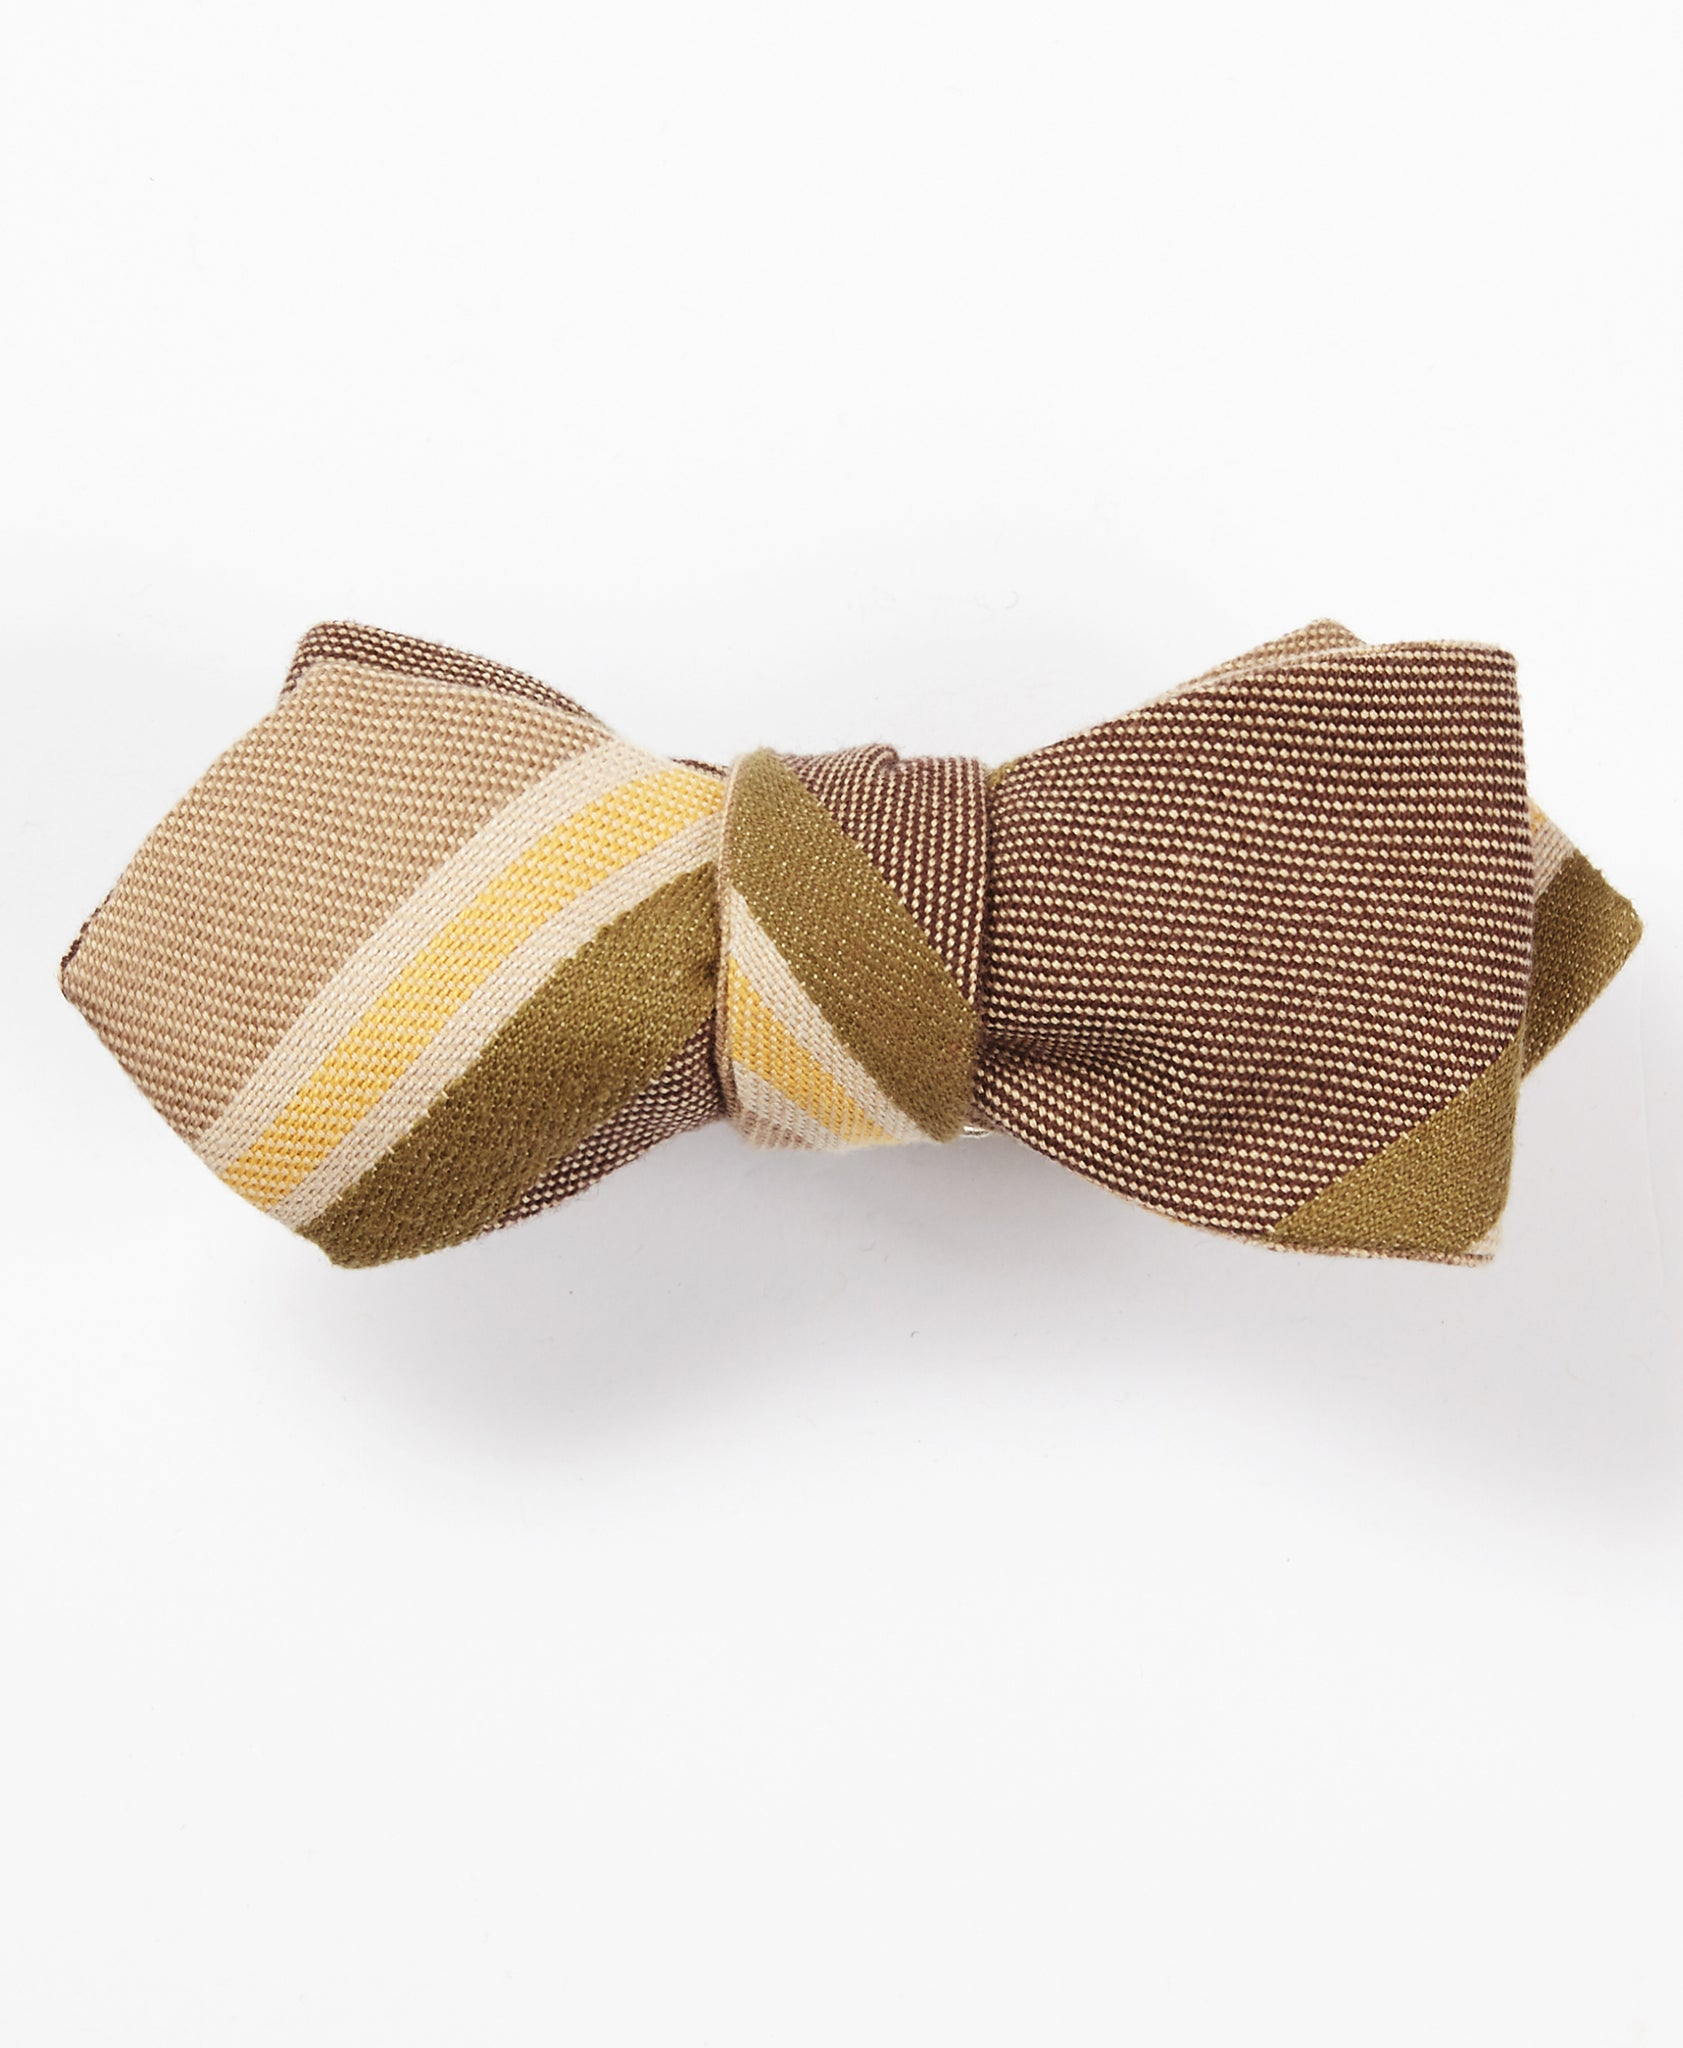 The Club Bow Tie